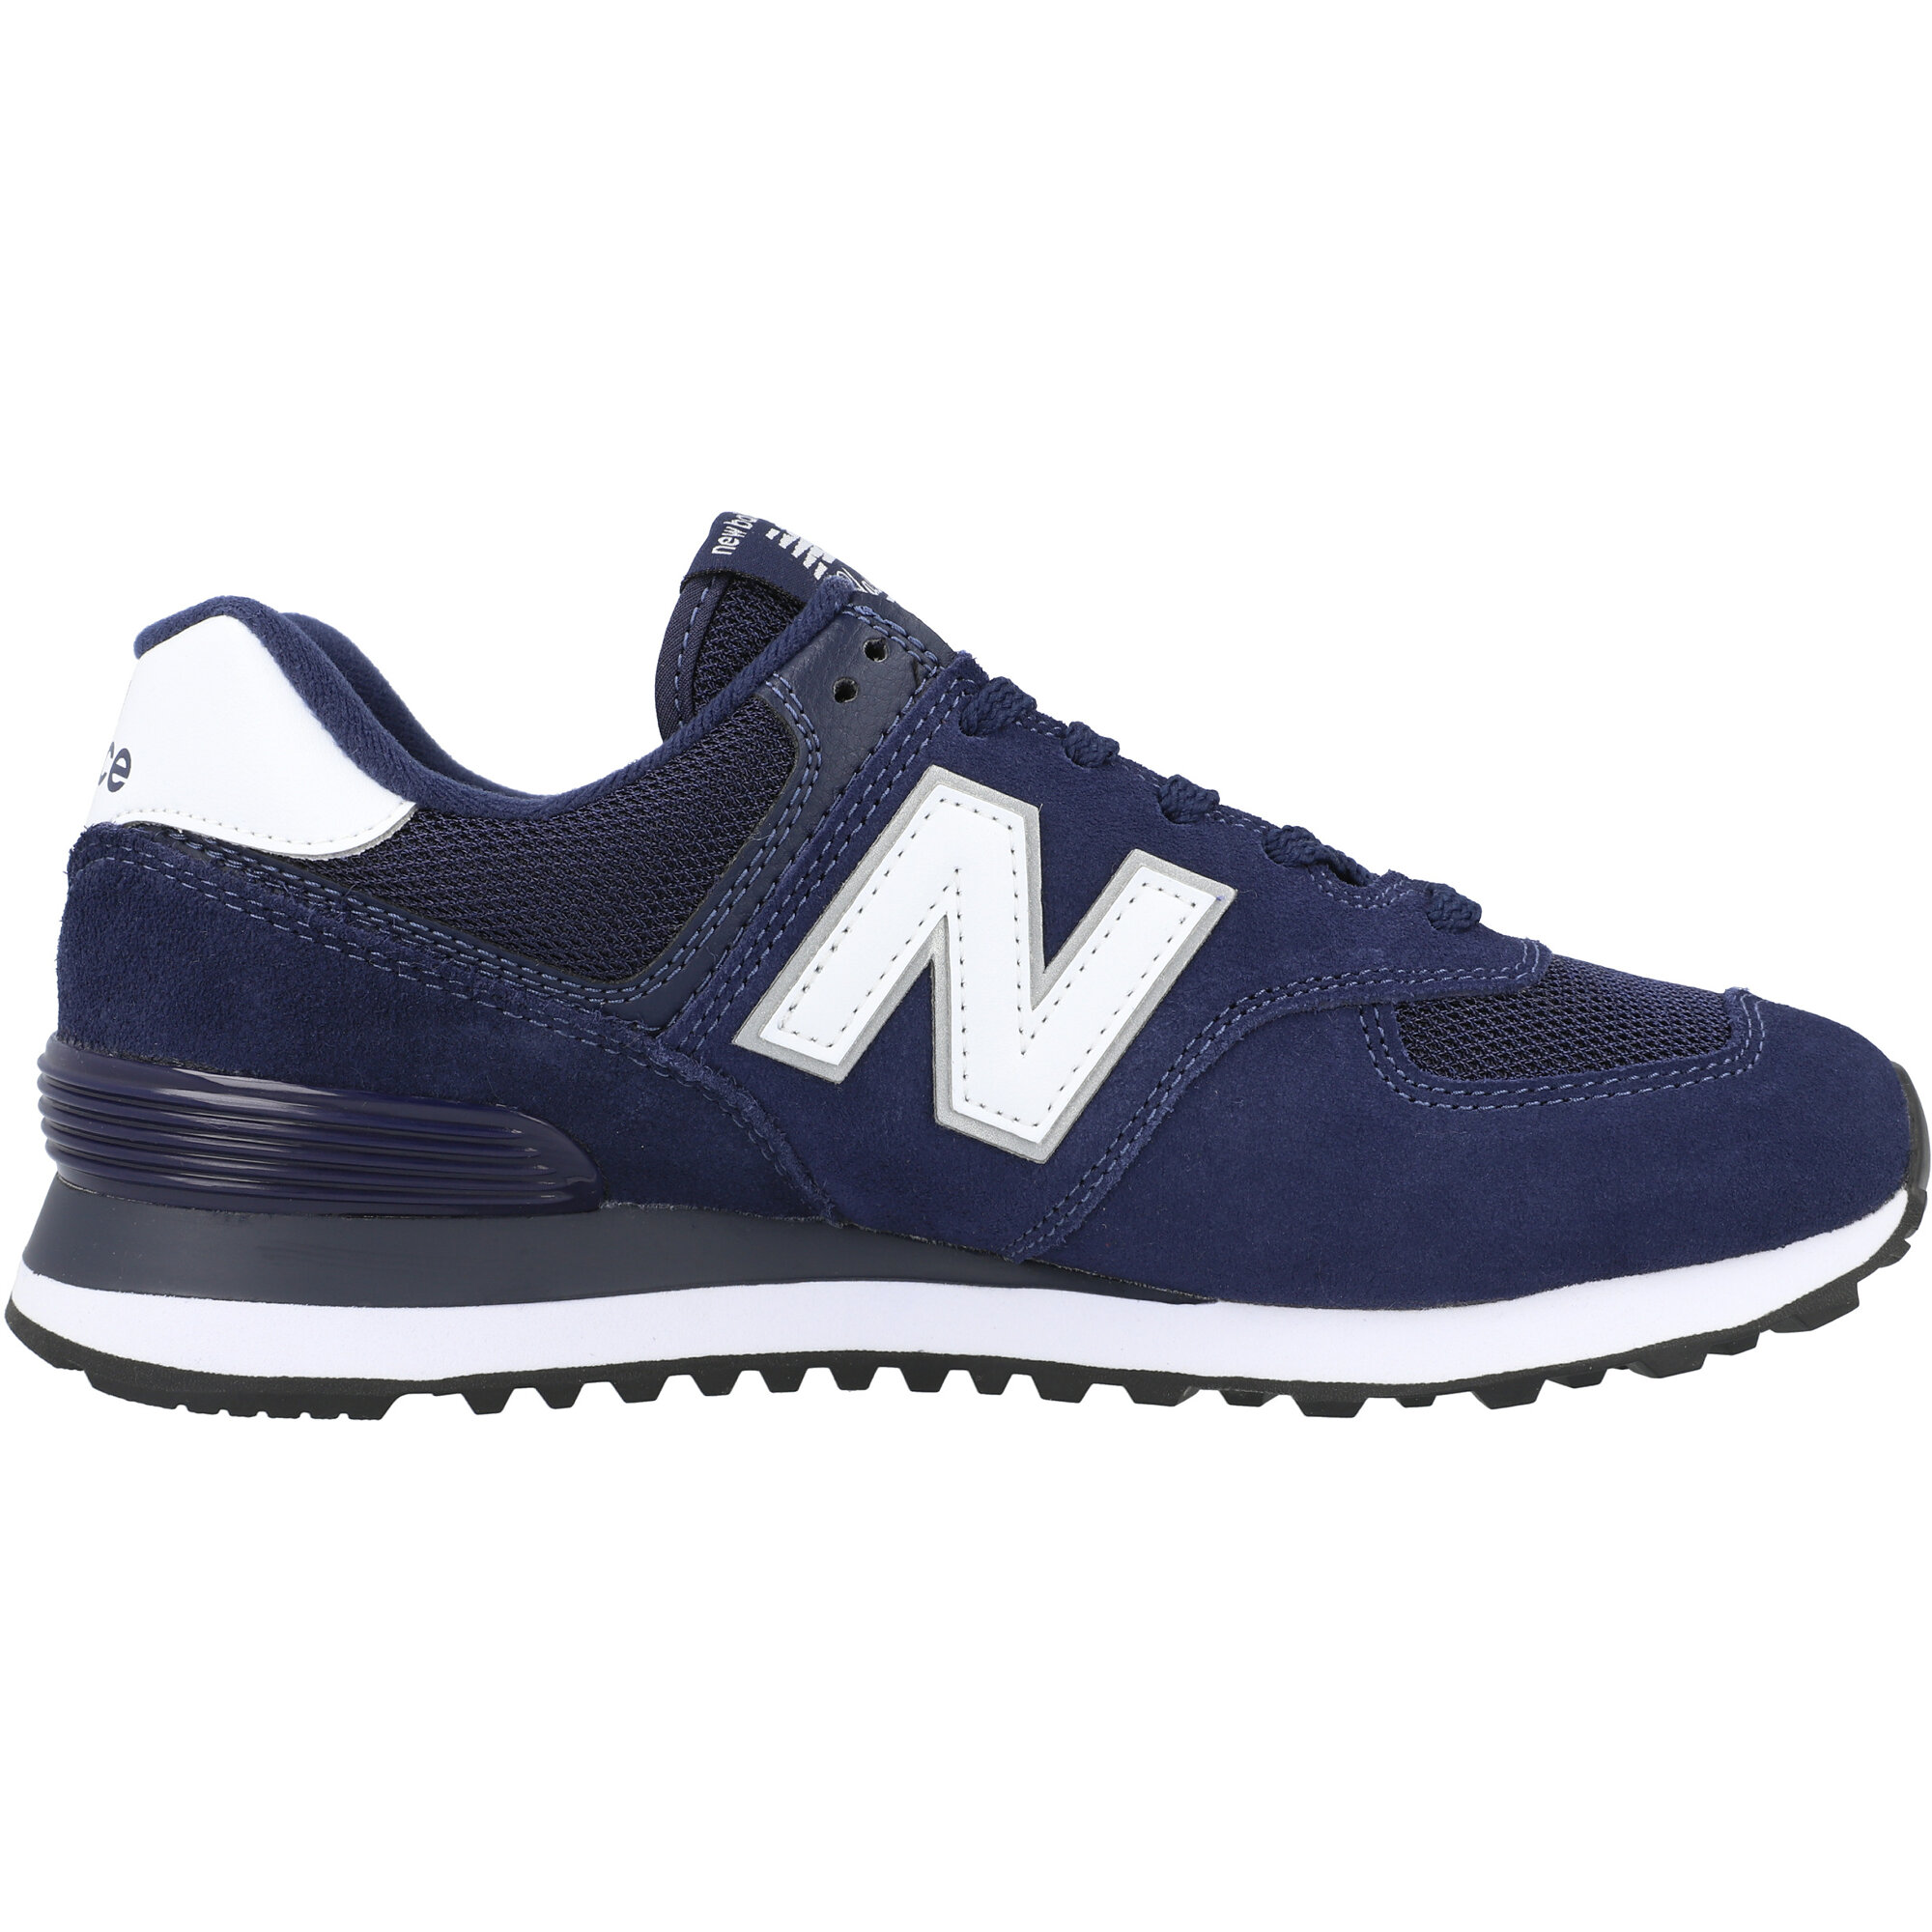 New Balance 574 Eclipse/White Suede